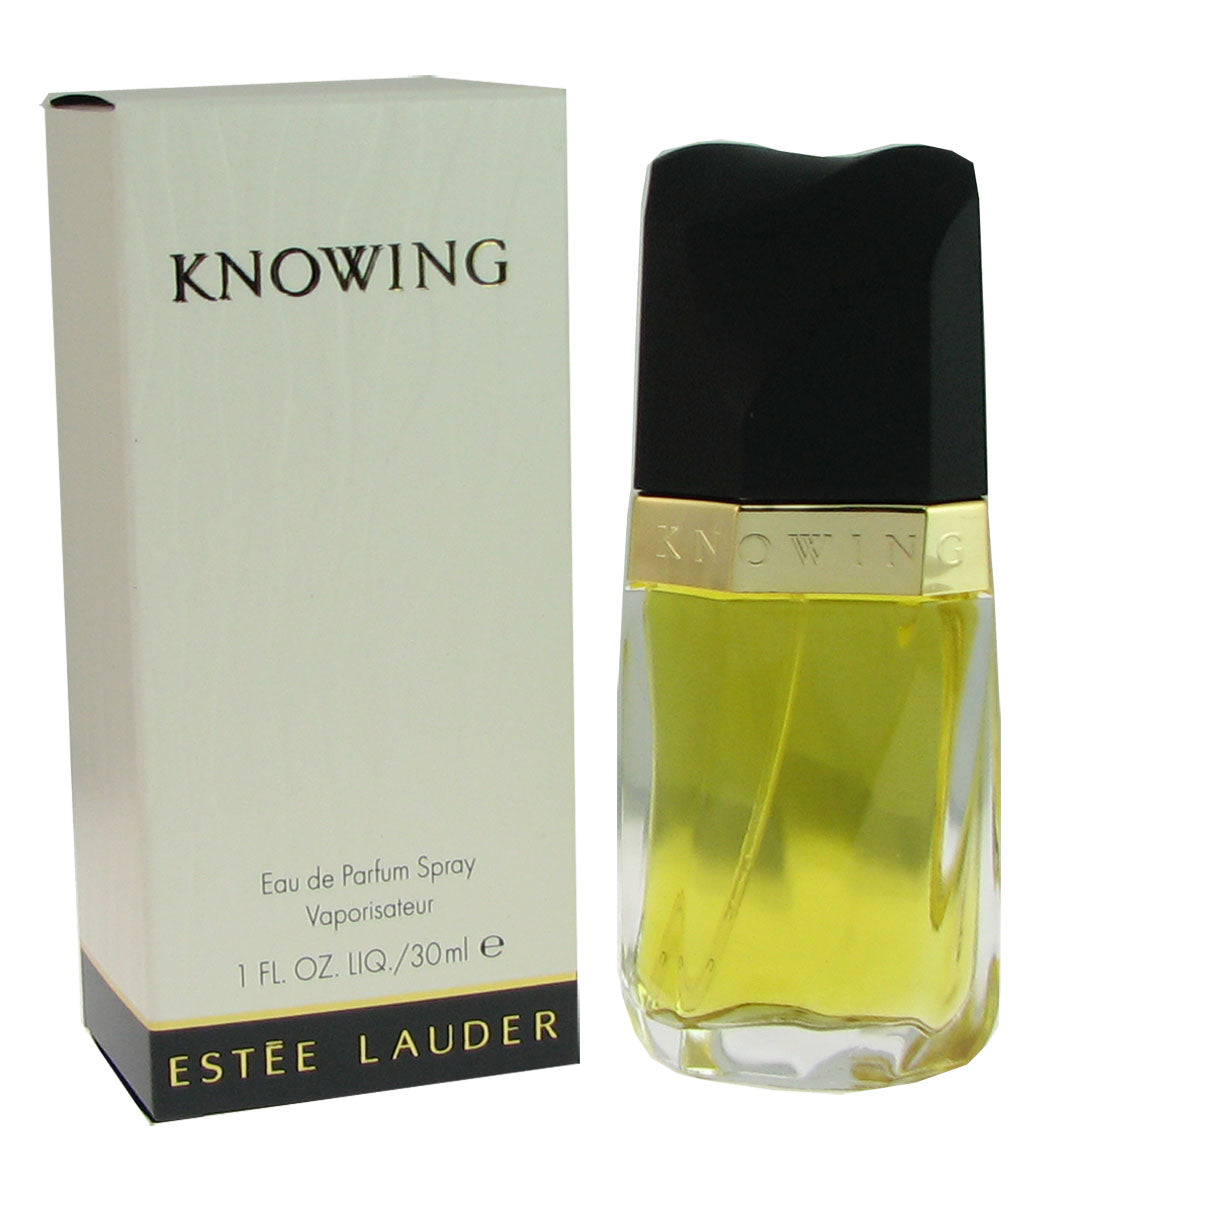 Knowing for Women by Estee Lauder 1 oz Eau de Parfum Spray Travel Size